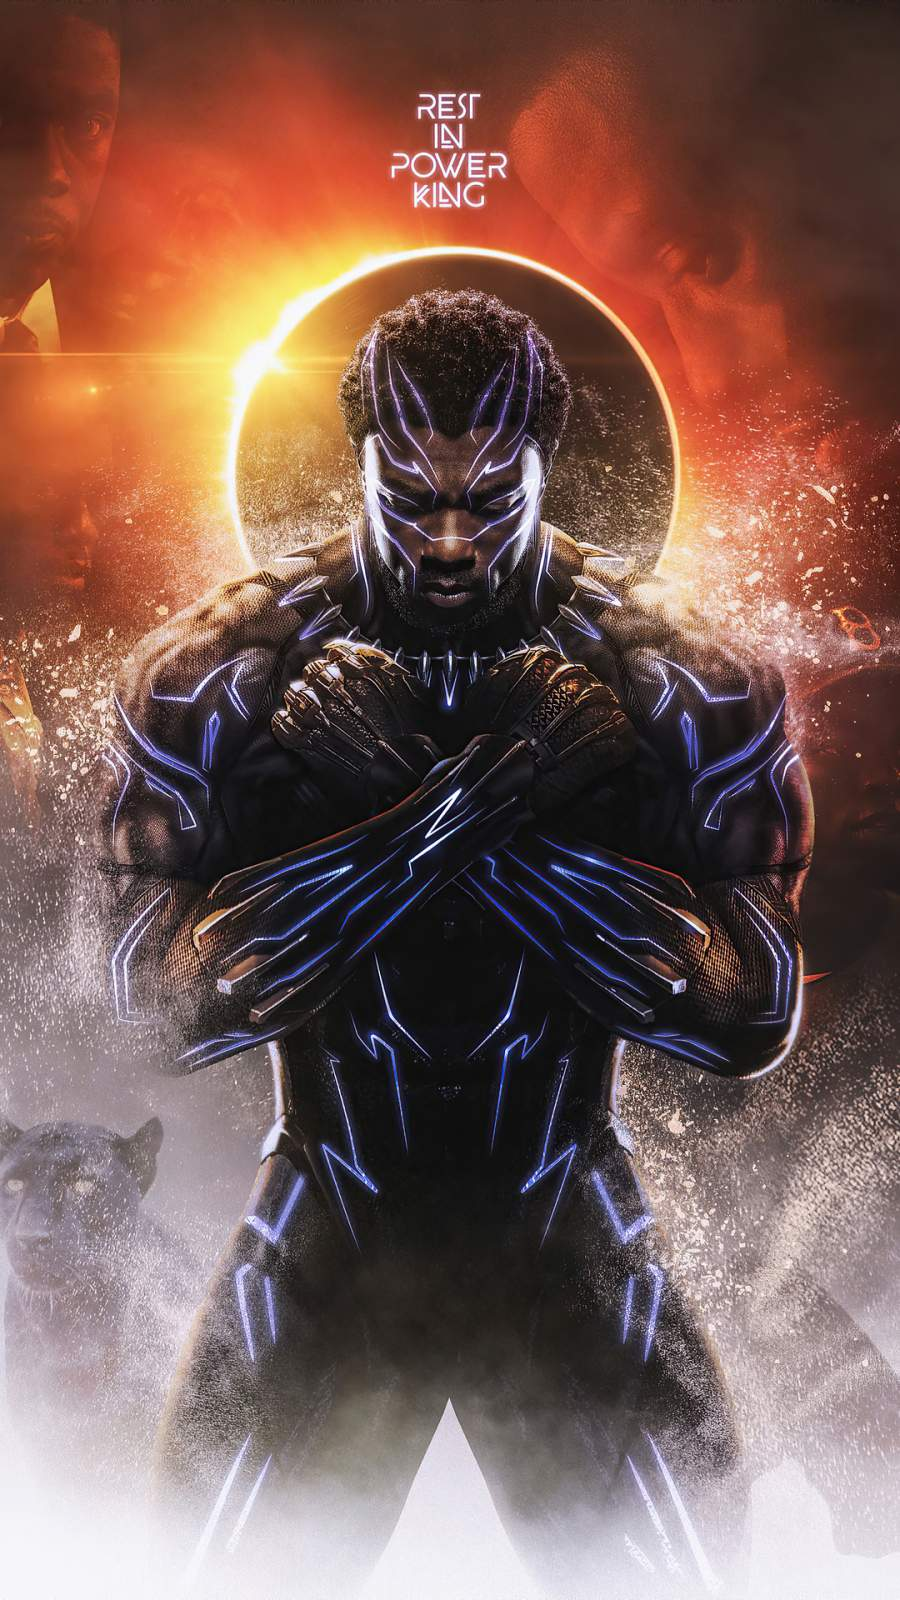 Black Panther Wakanda King iPhone Wallpaper